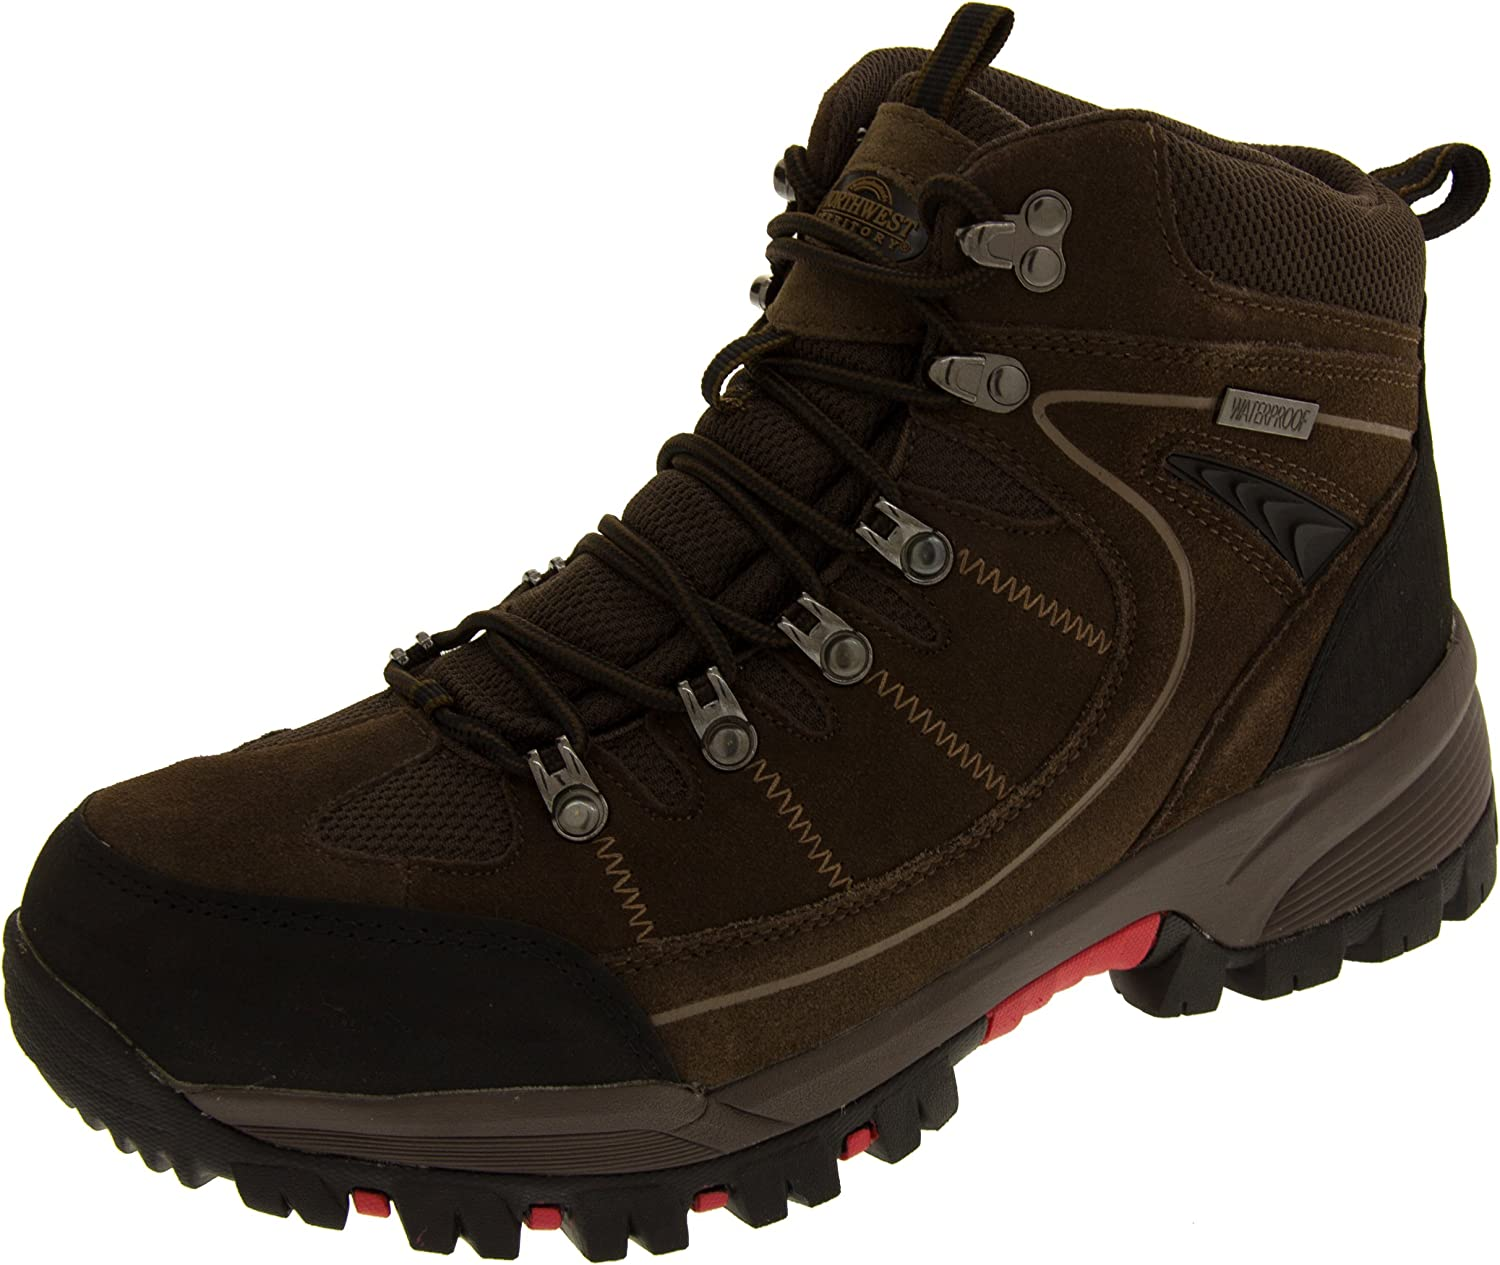 Northwest Territory Mens Leather Suede Waterproof Hiking Boots